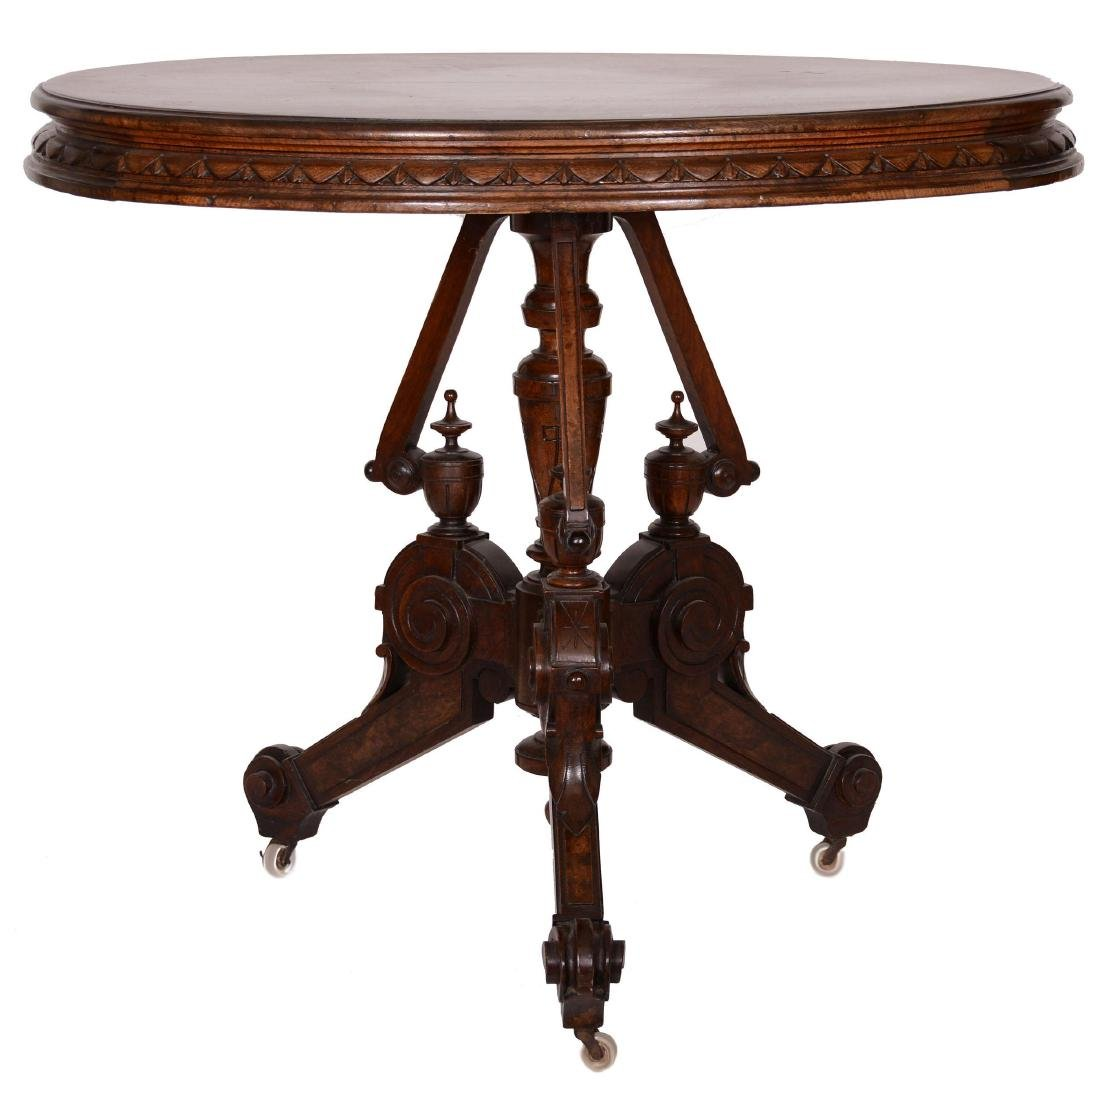 Victorian Walnut Oval Parlor Table